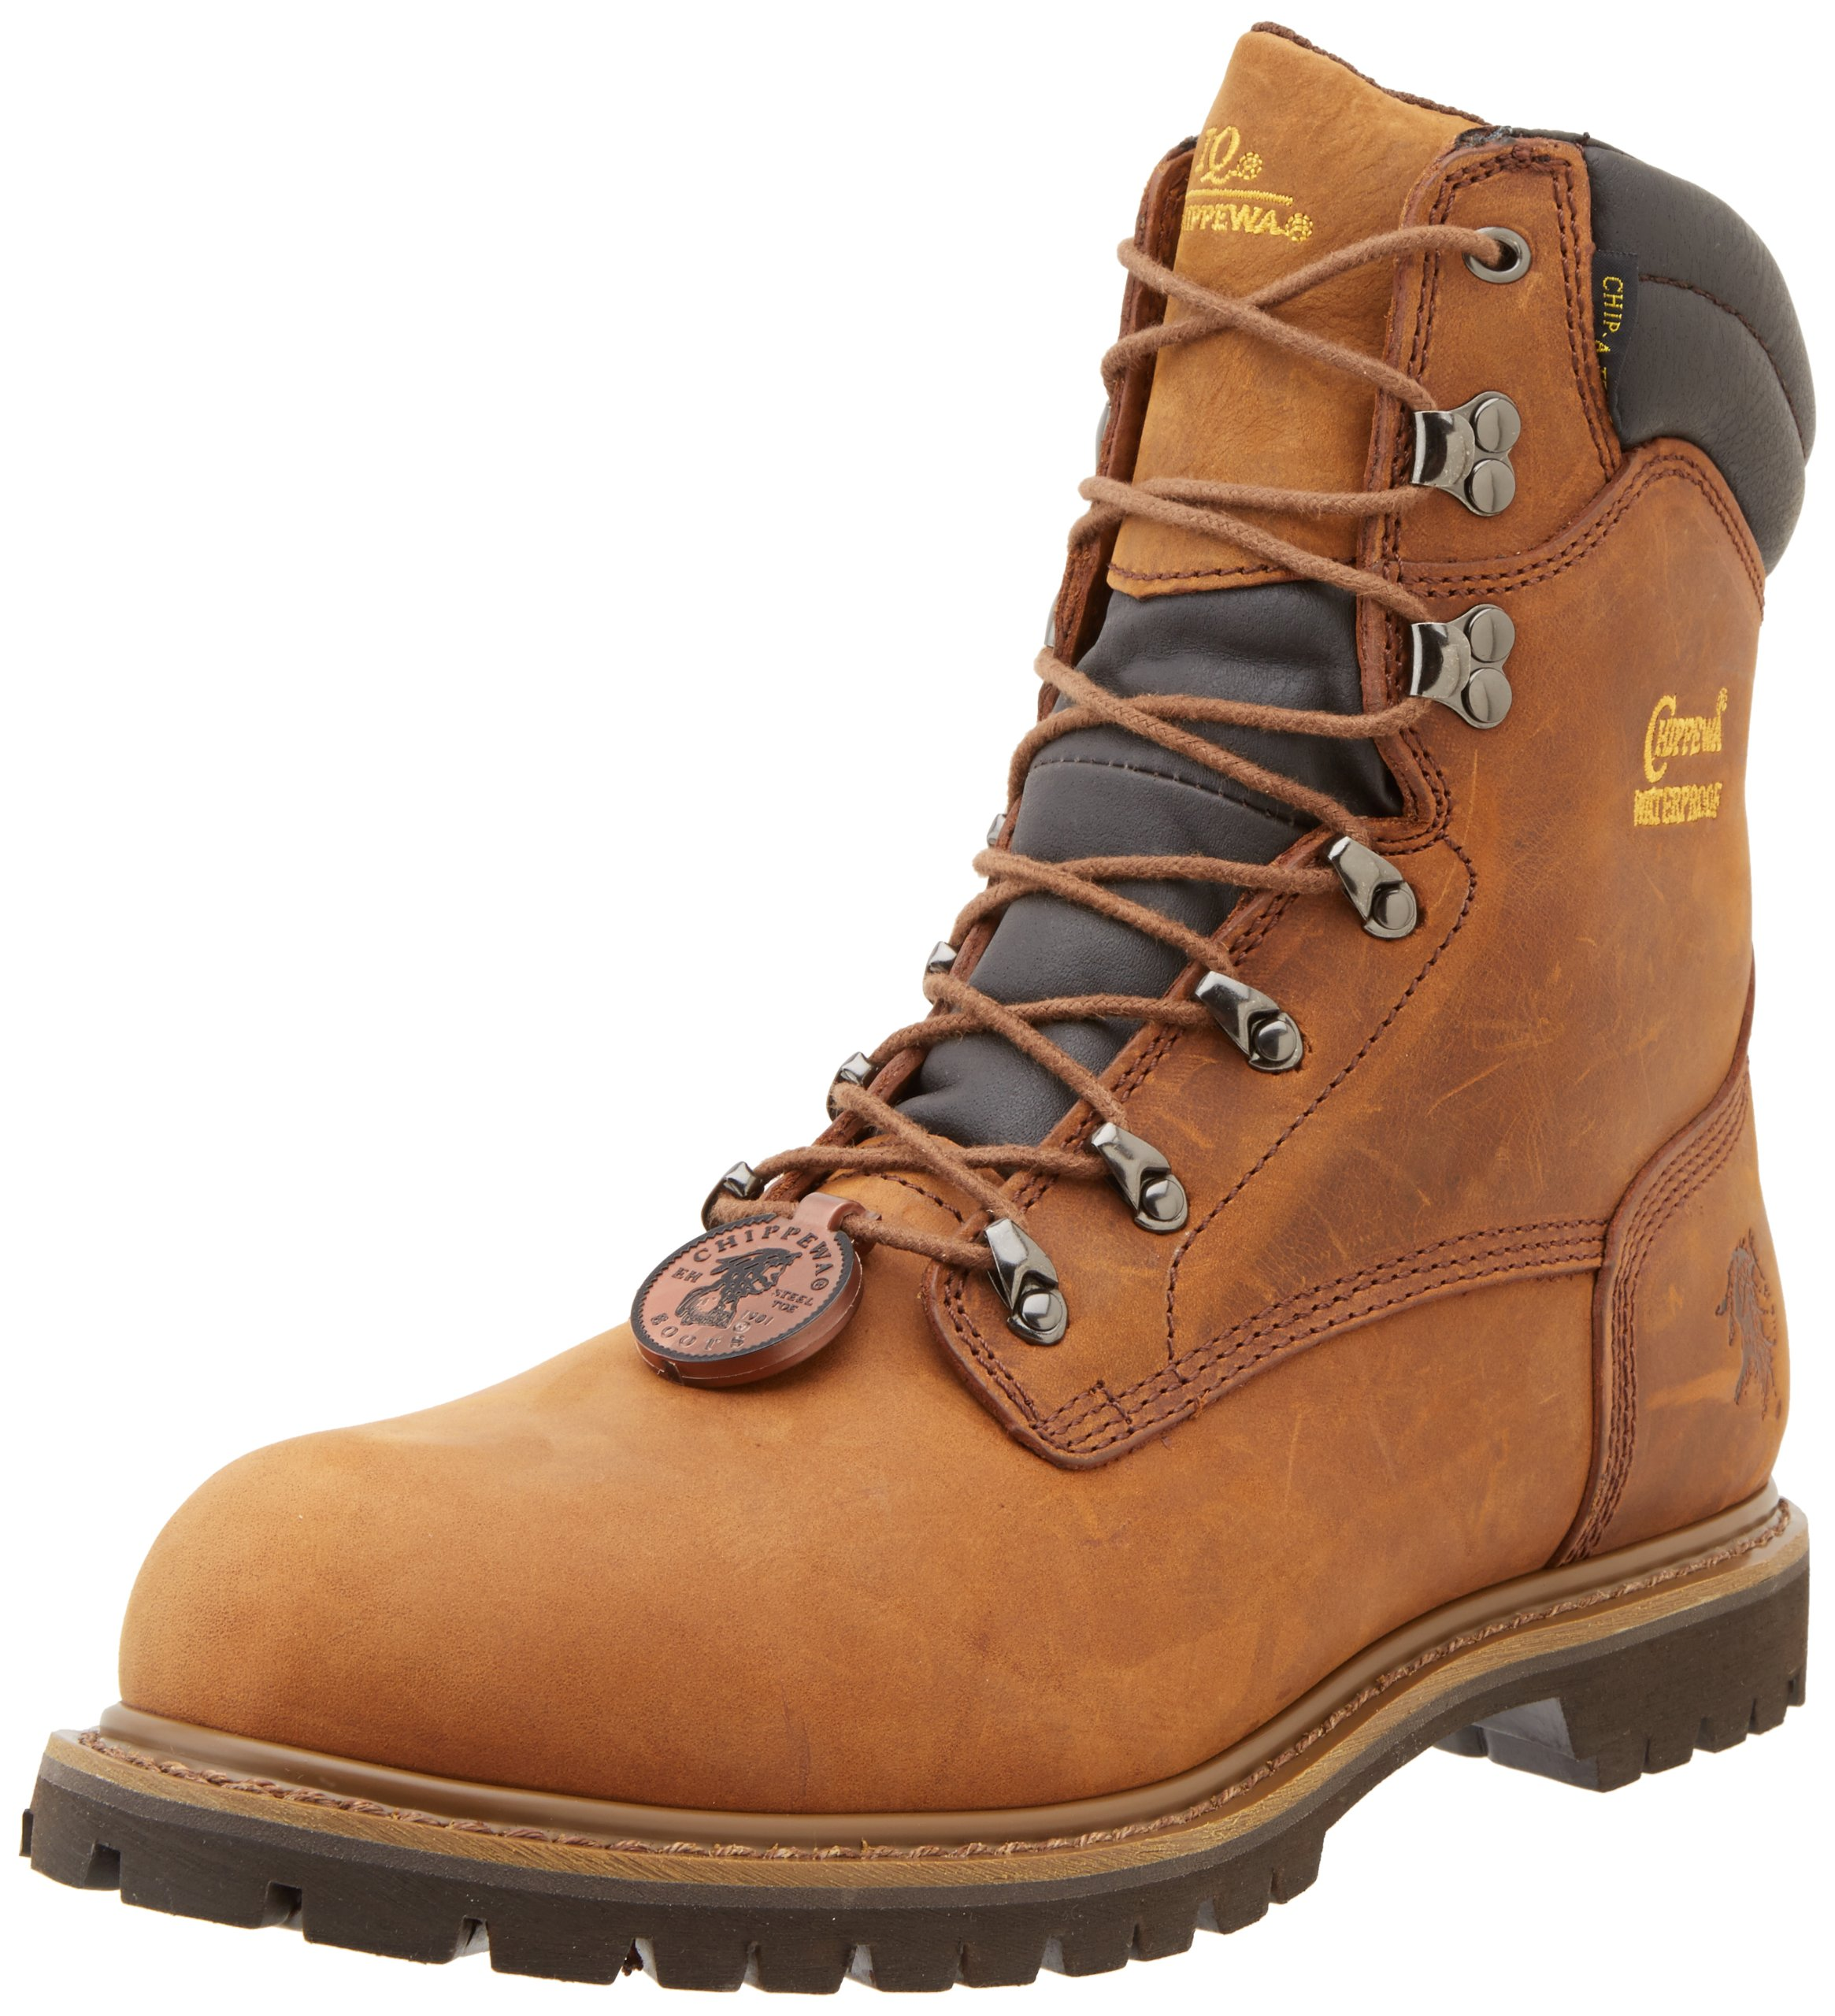 Chippewa Men's 8'' Waterproof Insulated Steel Toe 55069 Lace Up Boot,Brown,8 M US